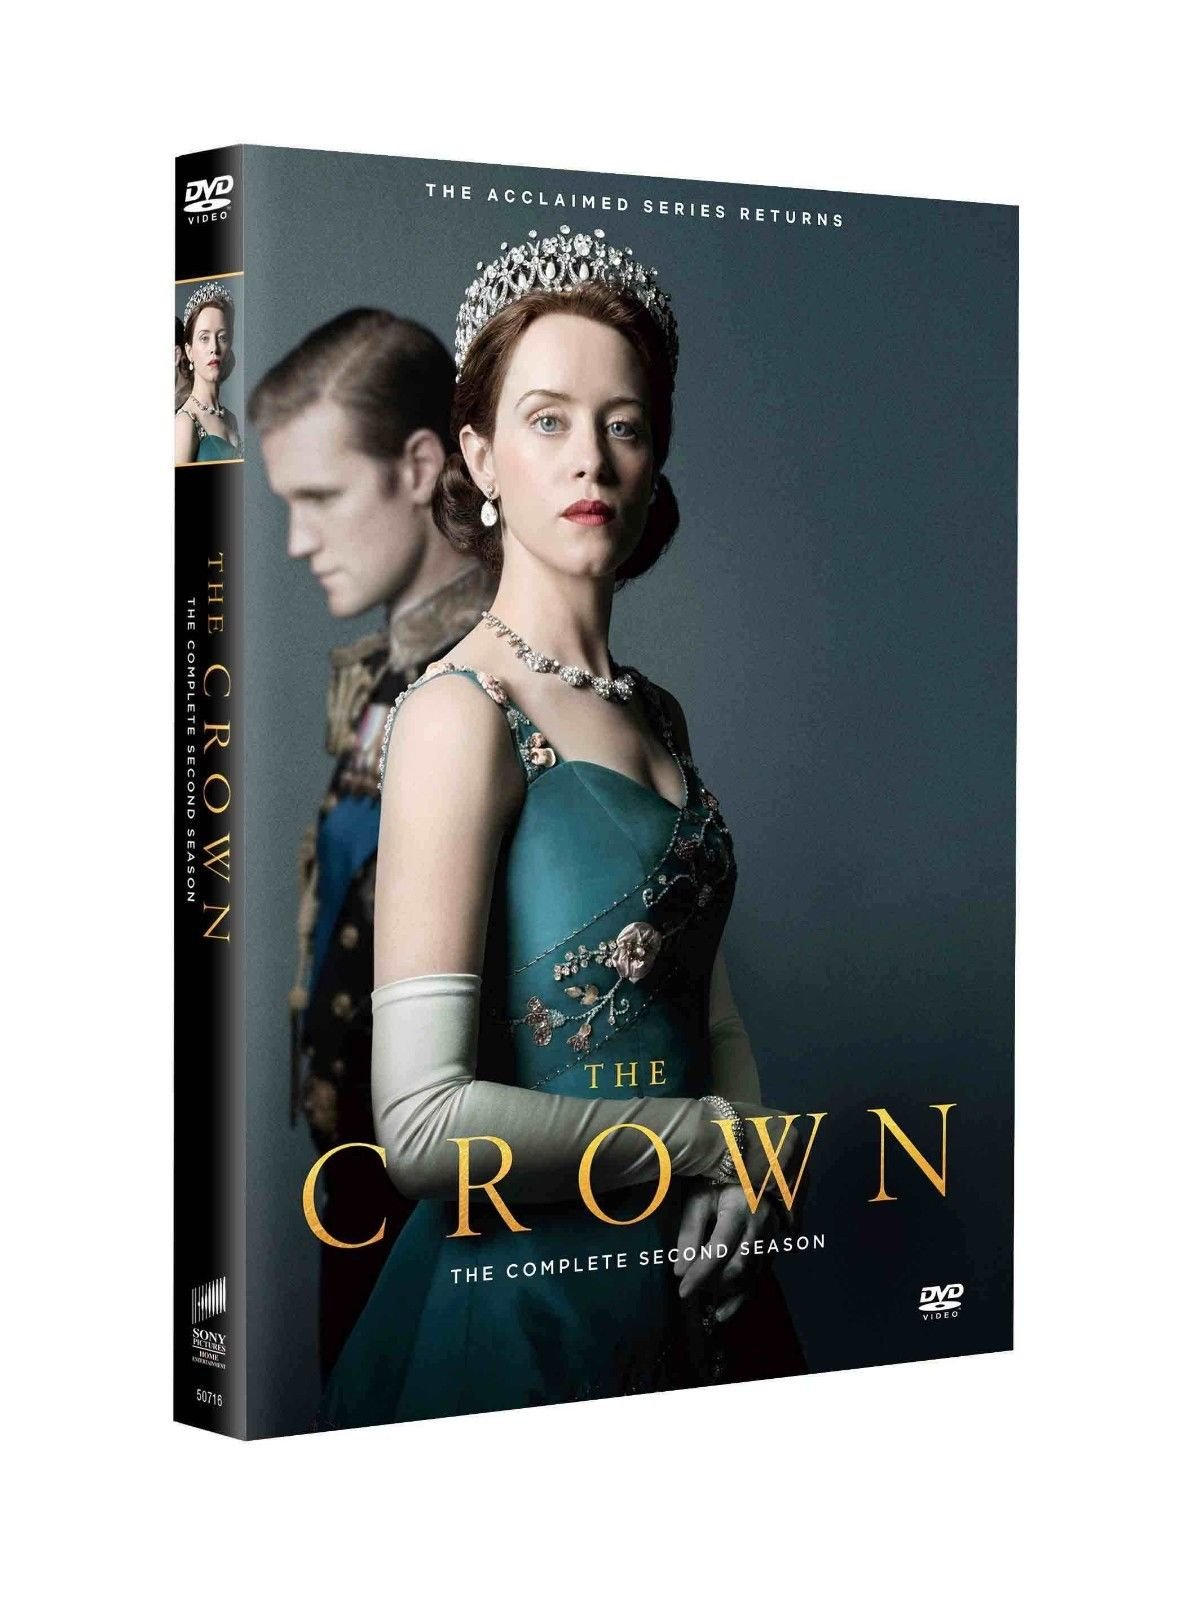 The Crown Season 2 DVD Set Next Day Ship